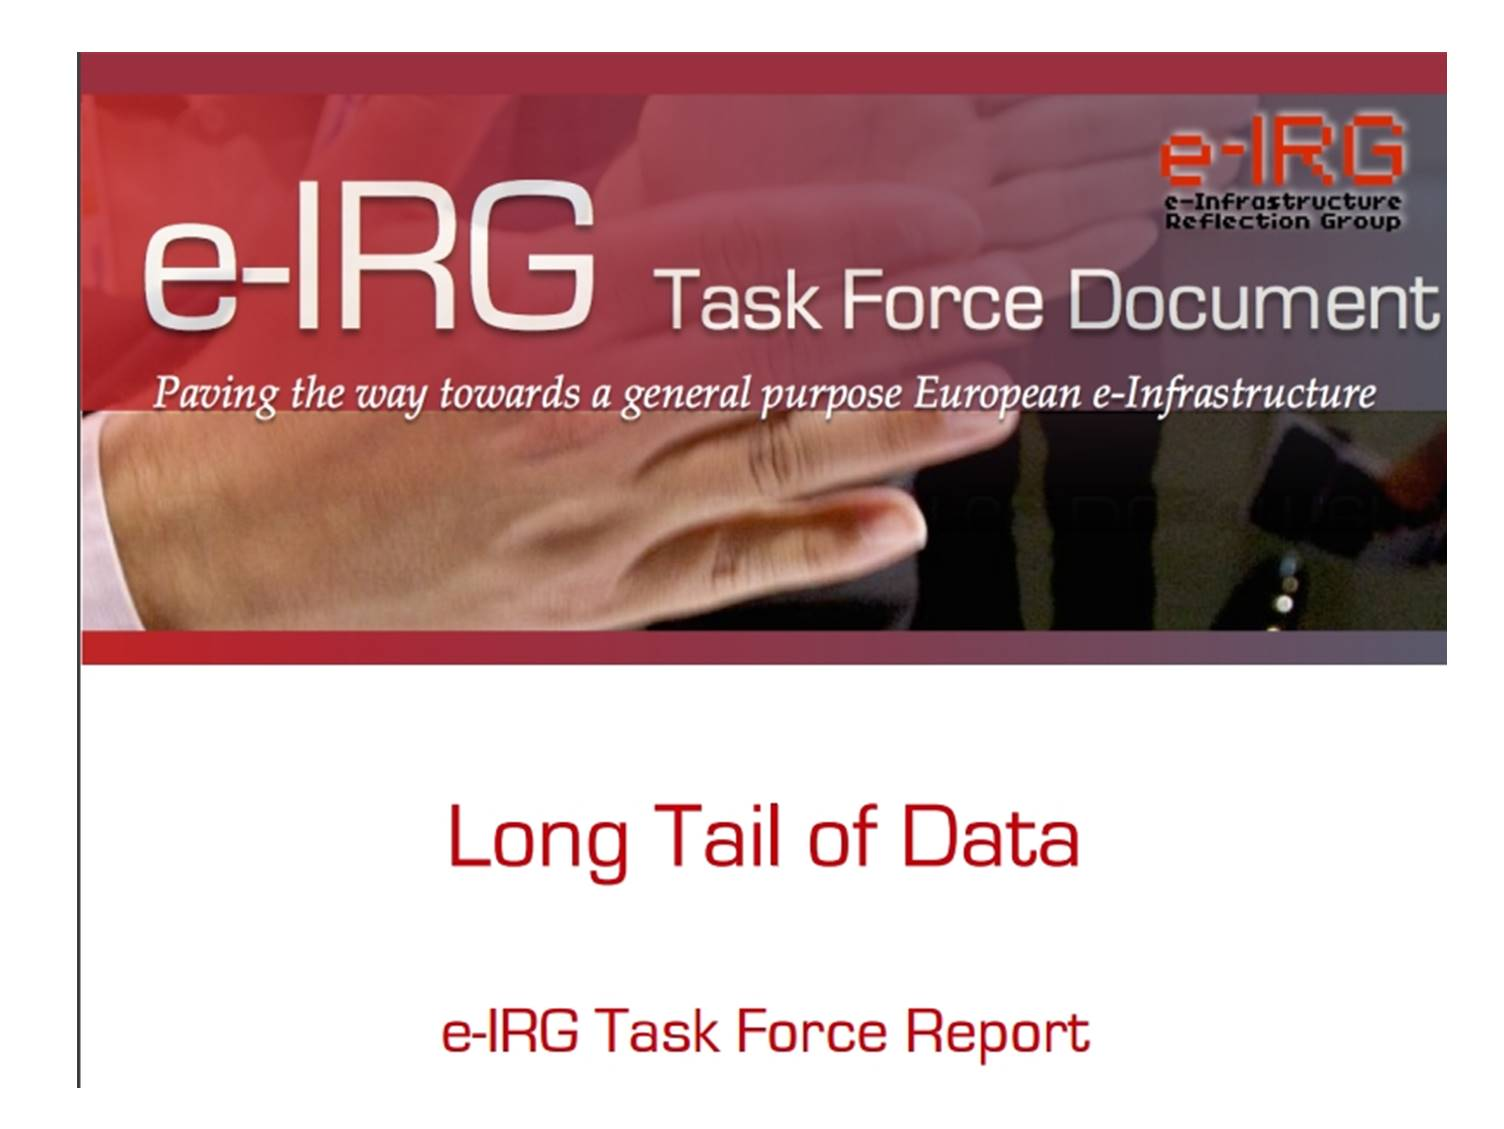 Taking care of the Long Tail of Data: I-IRG report